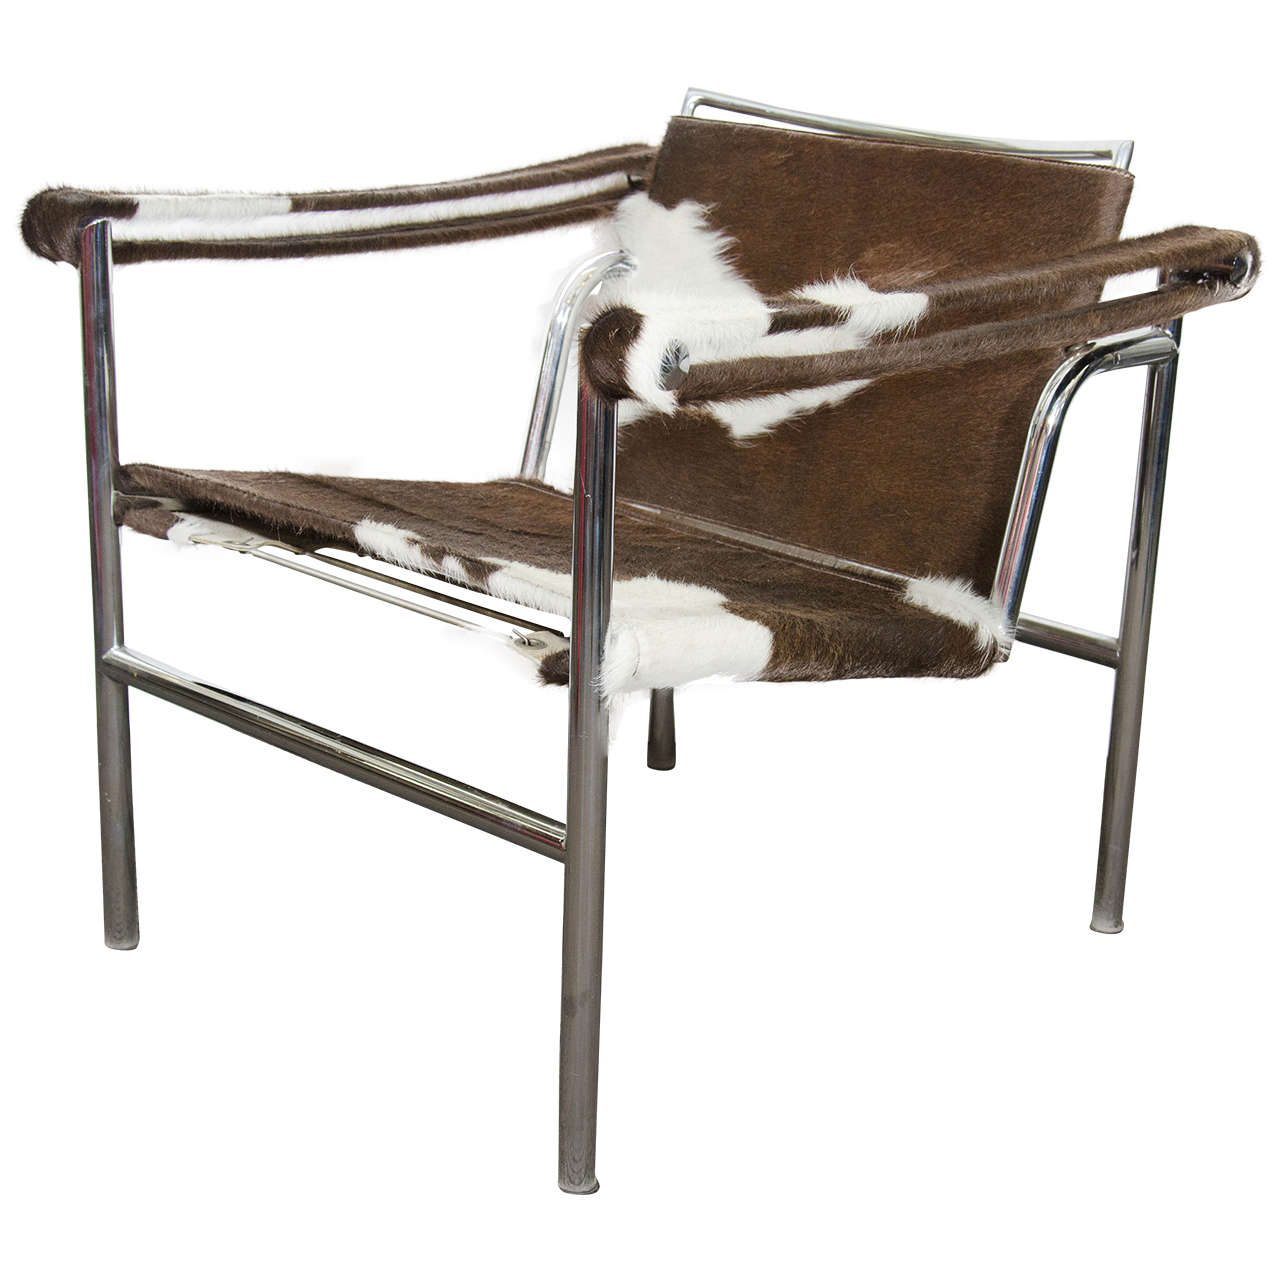 Midcentury le corbusier sling chair newly reupholstered in for Reupholstered chairs for sale